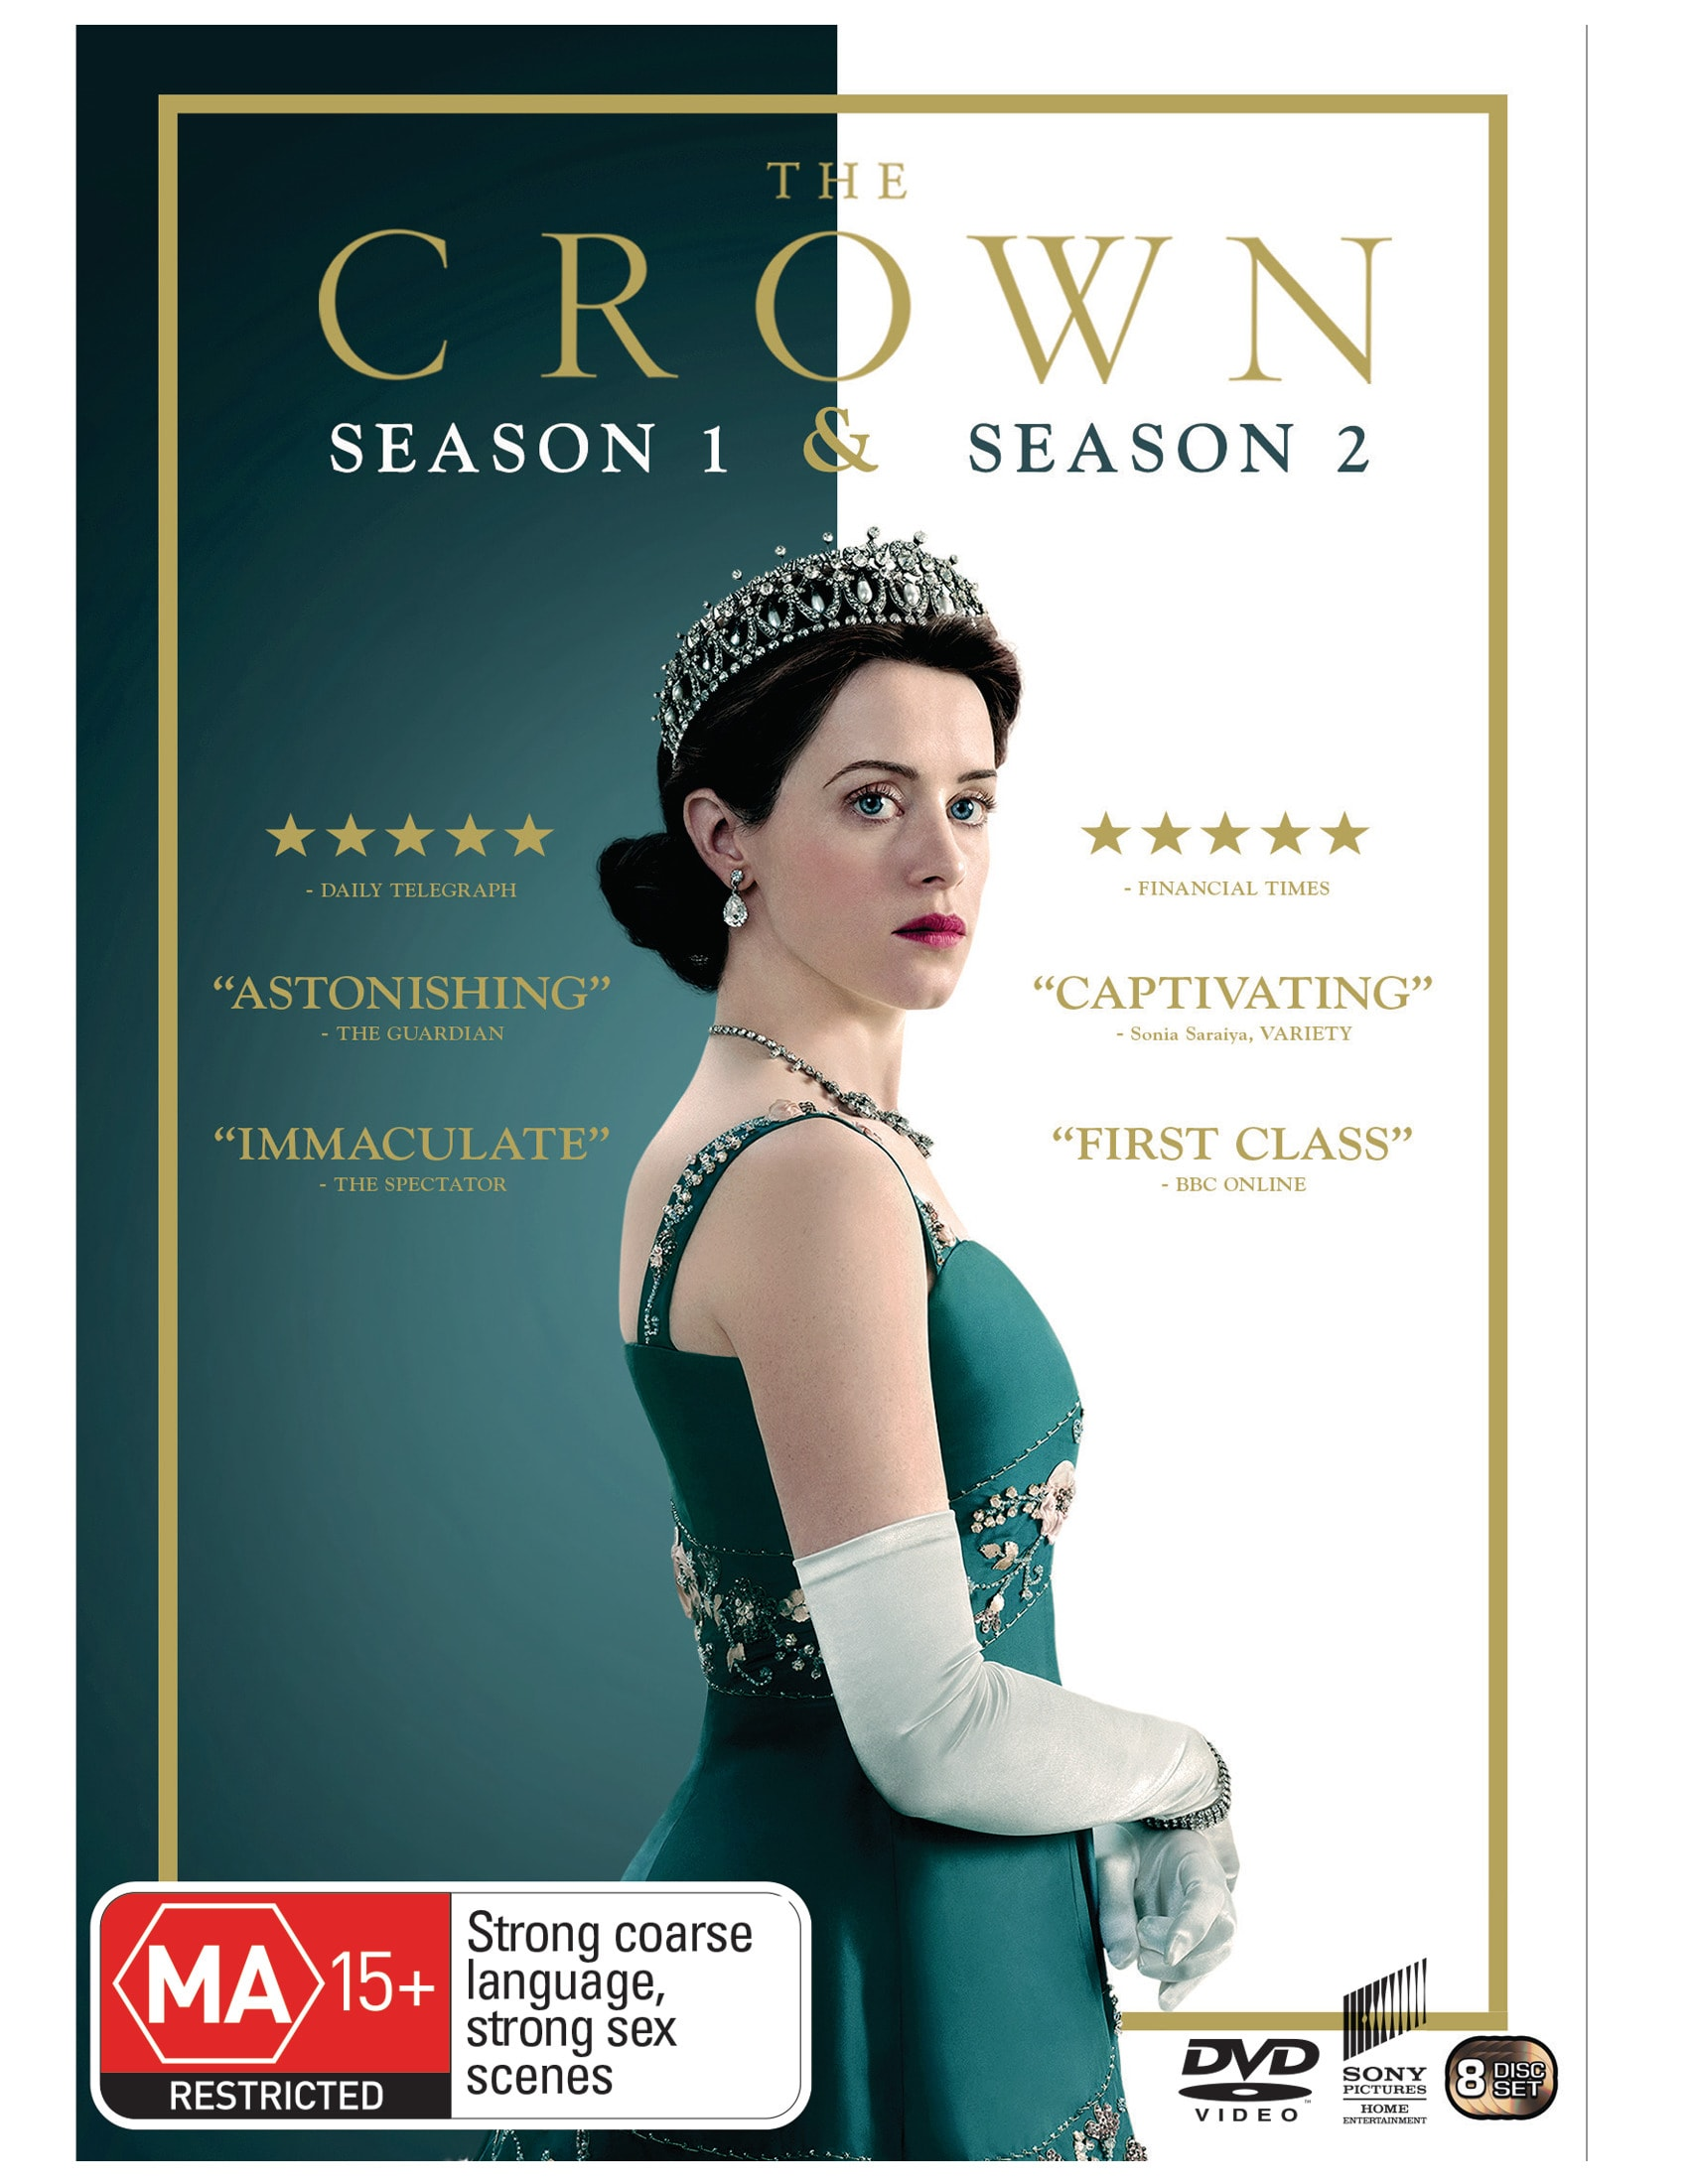 The Crown Season 1 & 2 Box Set [DVD]